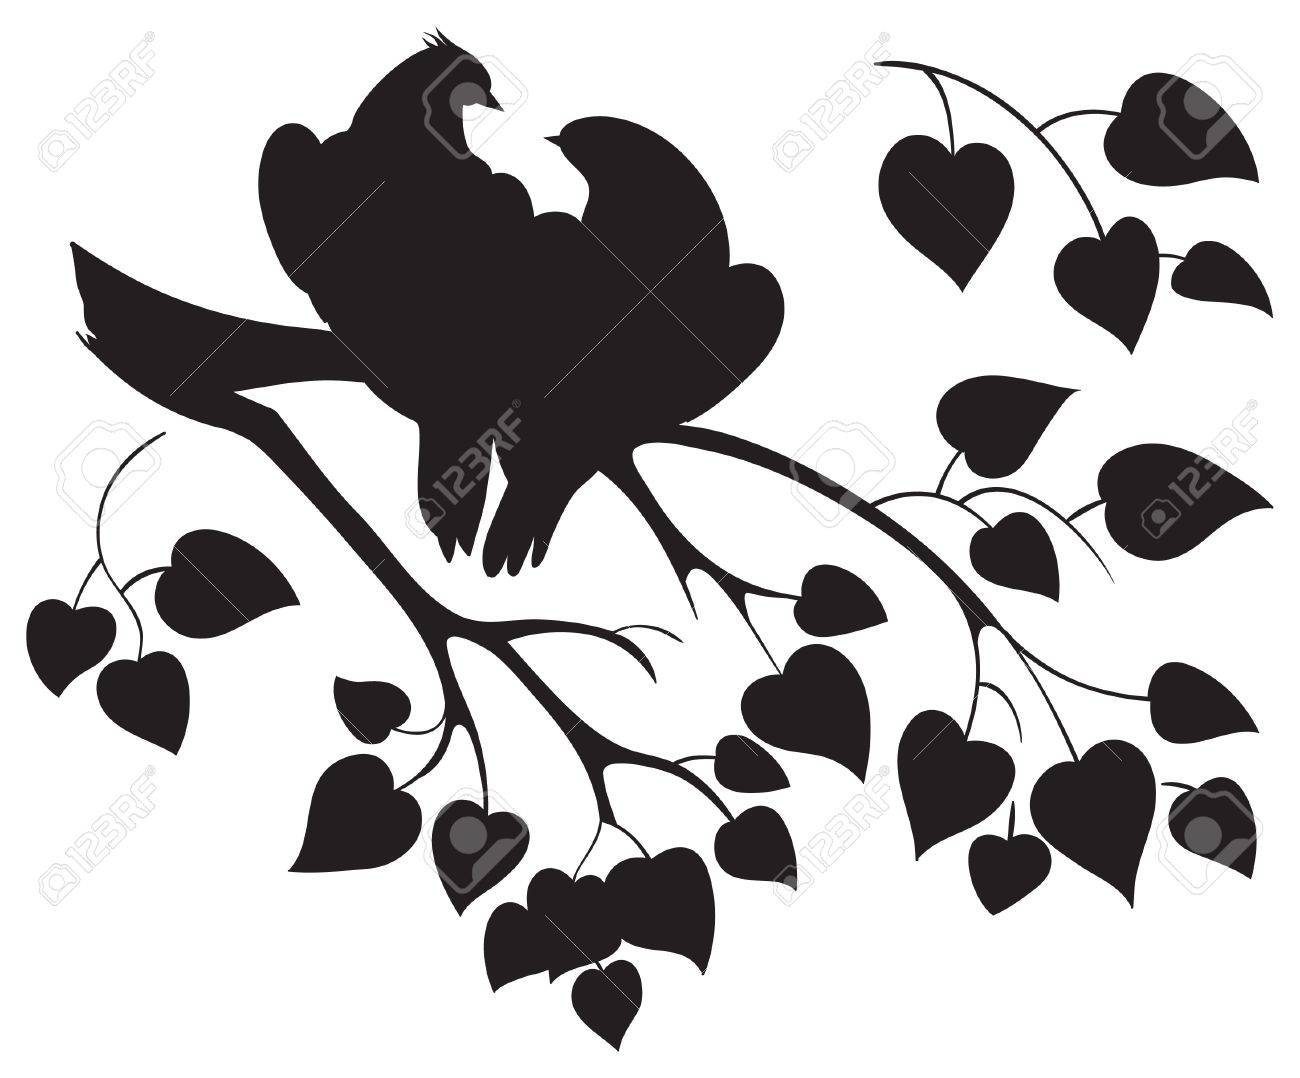 Vector silhouette of love birds sitting on branch tree.